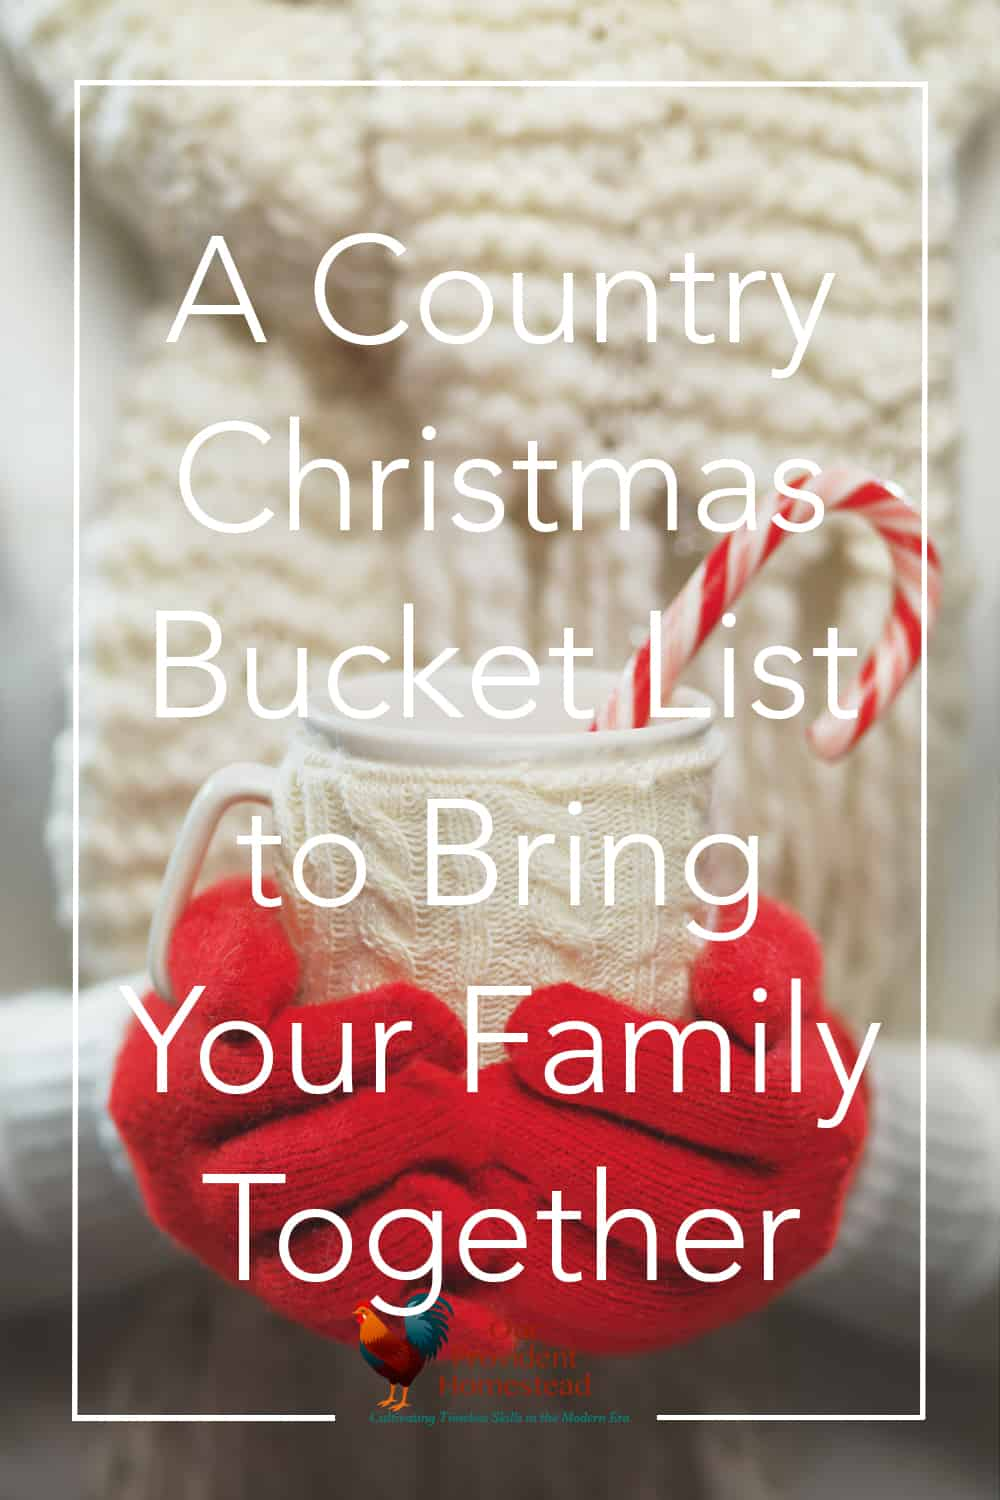 Do you need more ideas for Christmas activities for your family? Click here to get our Christmas bucket list and spend quality time with your family. #Christmas #familyactivities #holidayfun